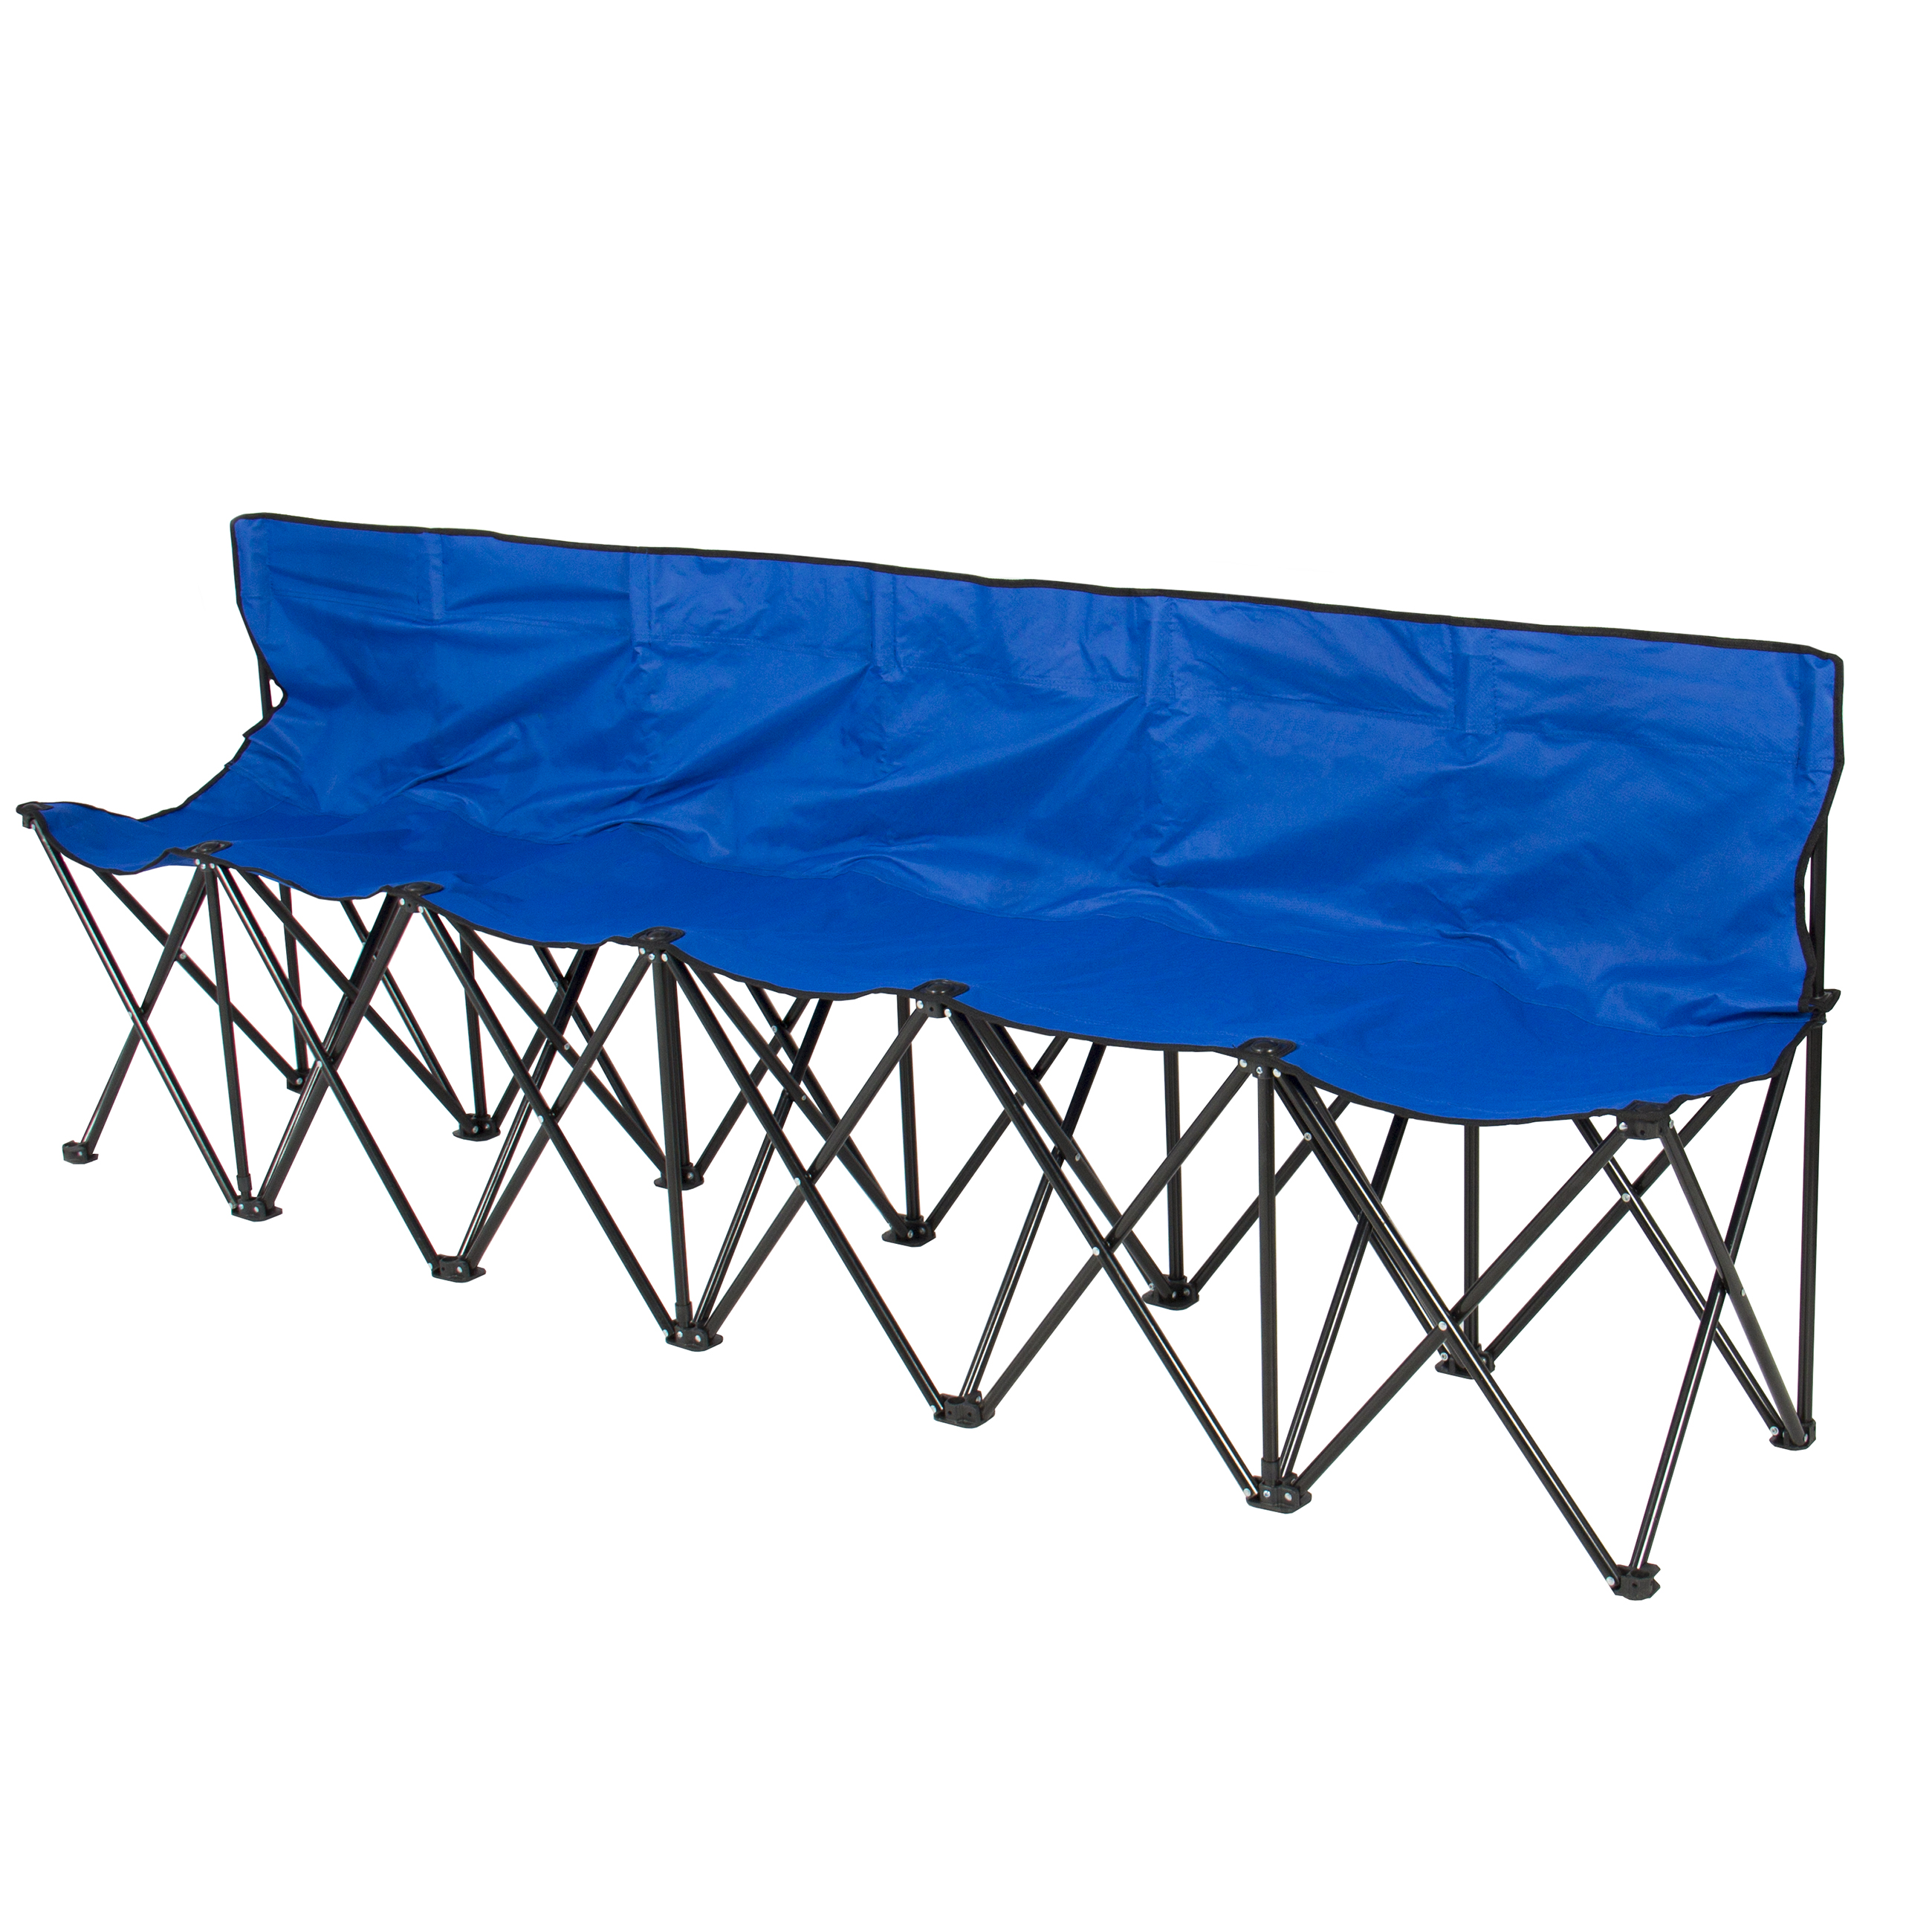 Brilliant Best Choice Products 6 Seat Portable Folding Bench For Camping Sports Sideline W Steel Tube Frame Carry Case Blue Walmart Com Andrewgaddart Wooden Chair Designs For Living Room Andrewgaddartcom